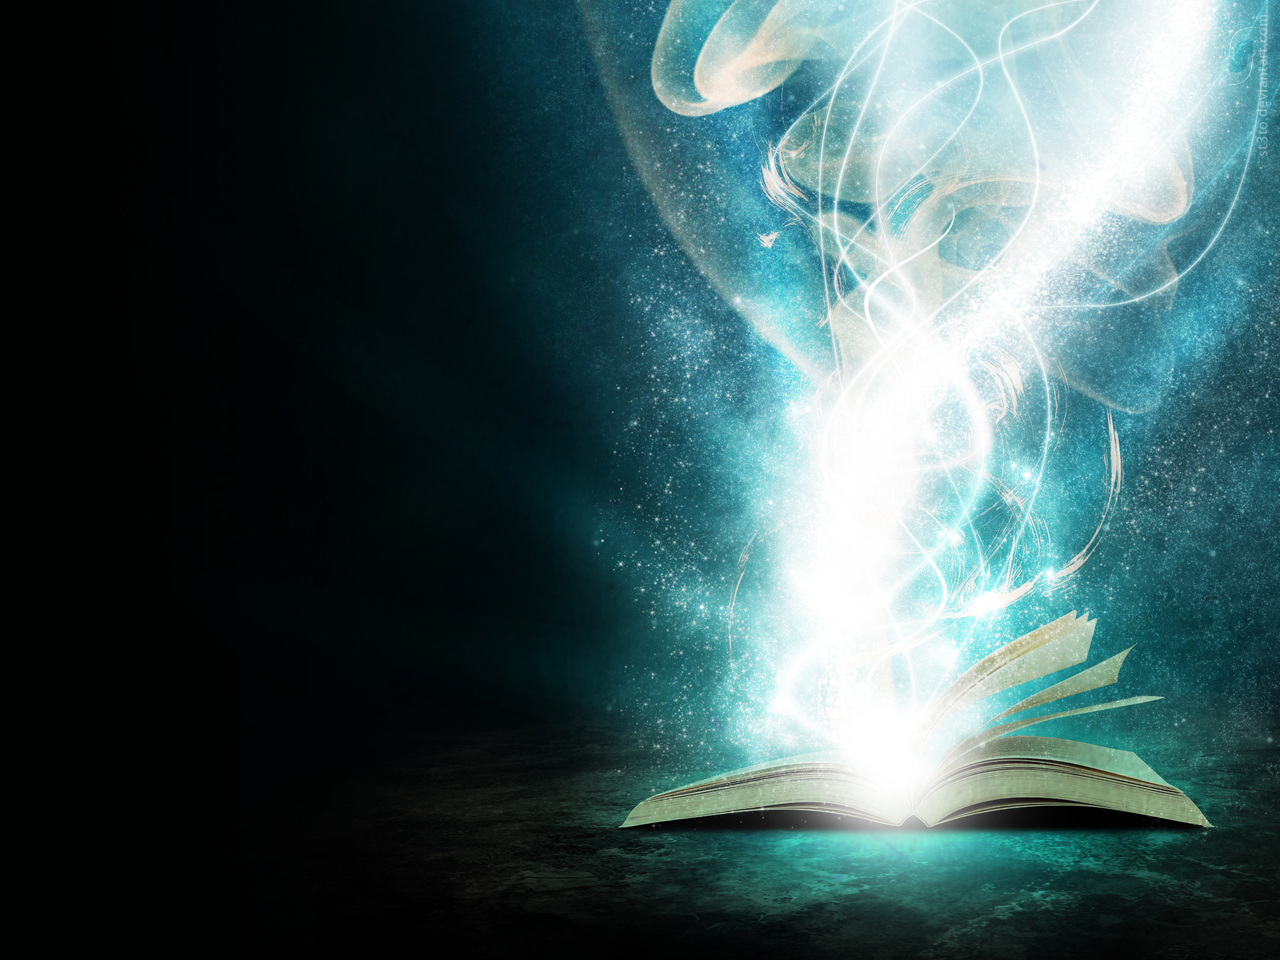 Book of a Wizard